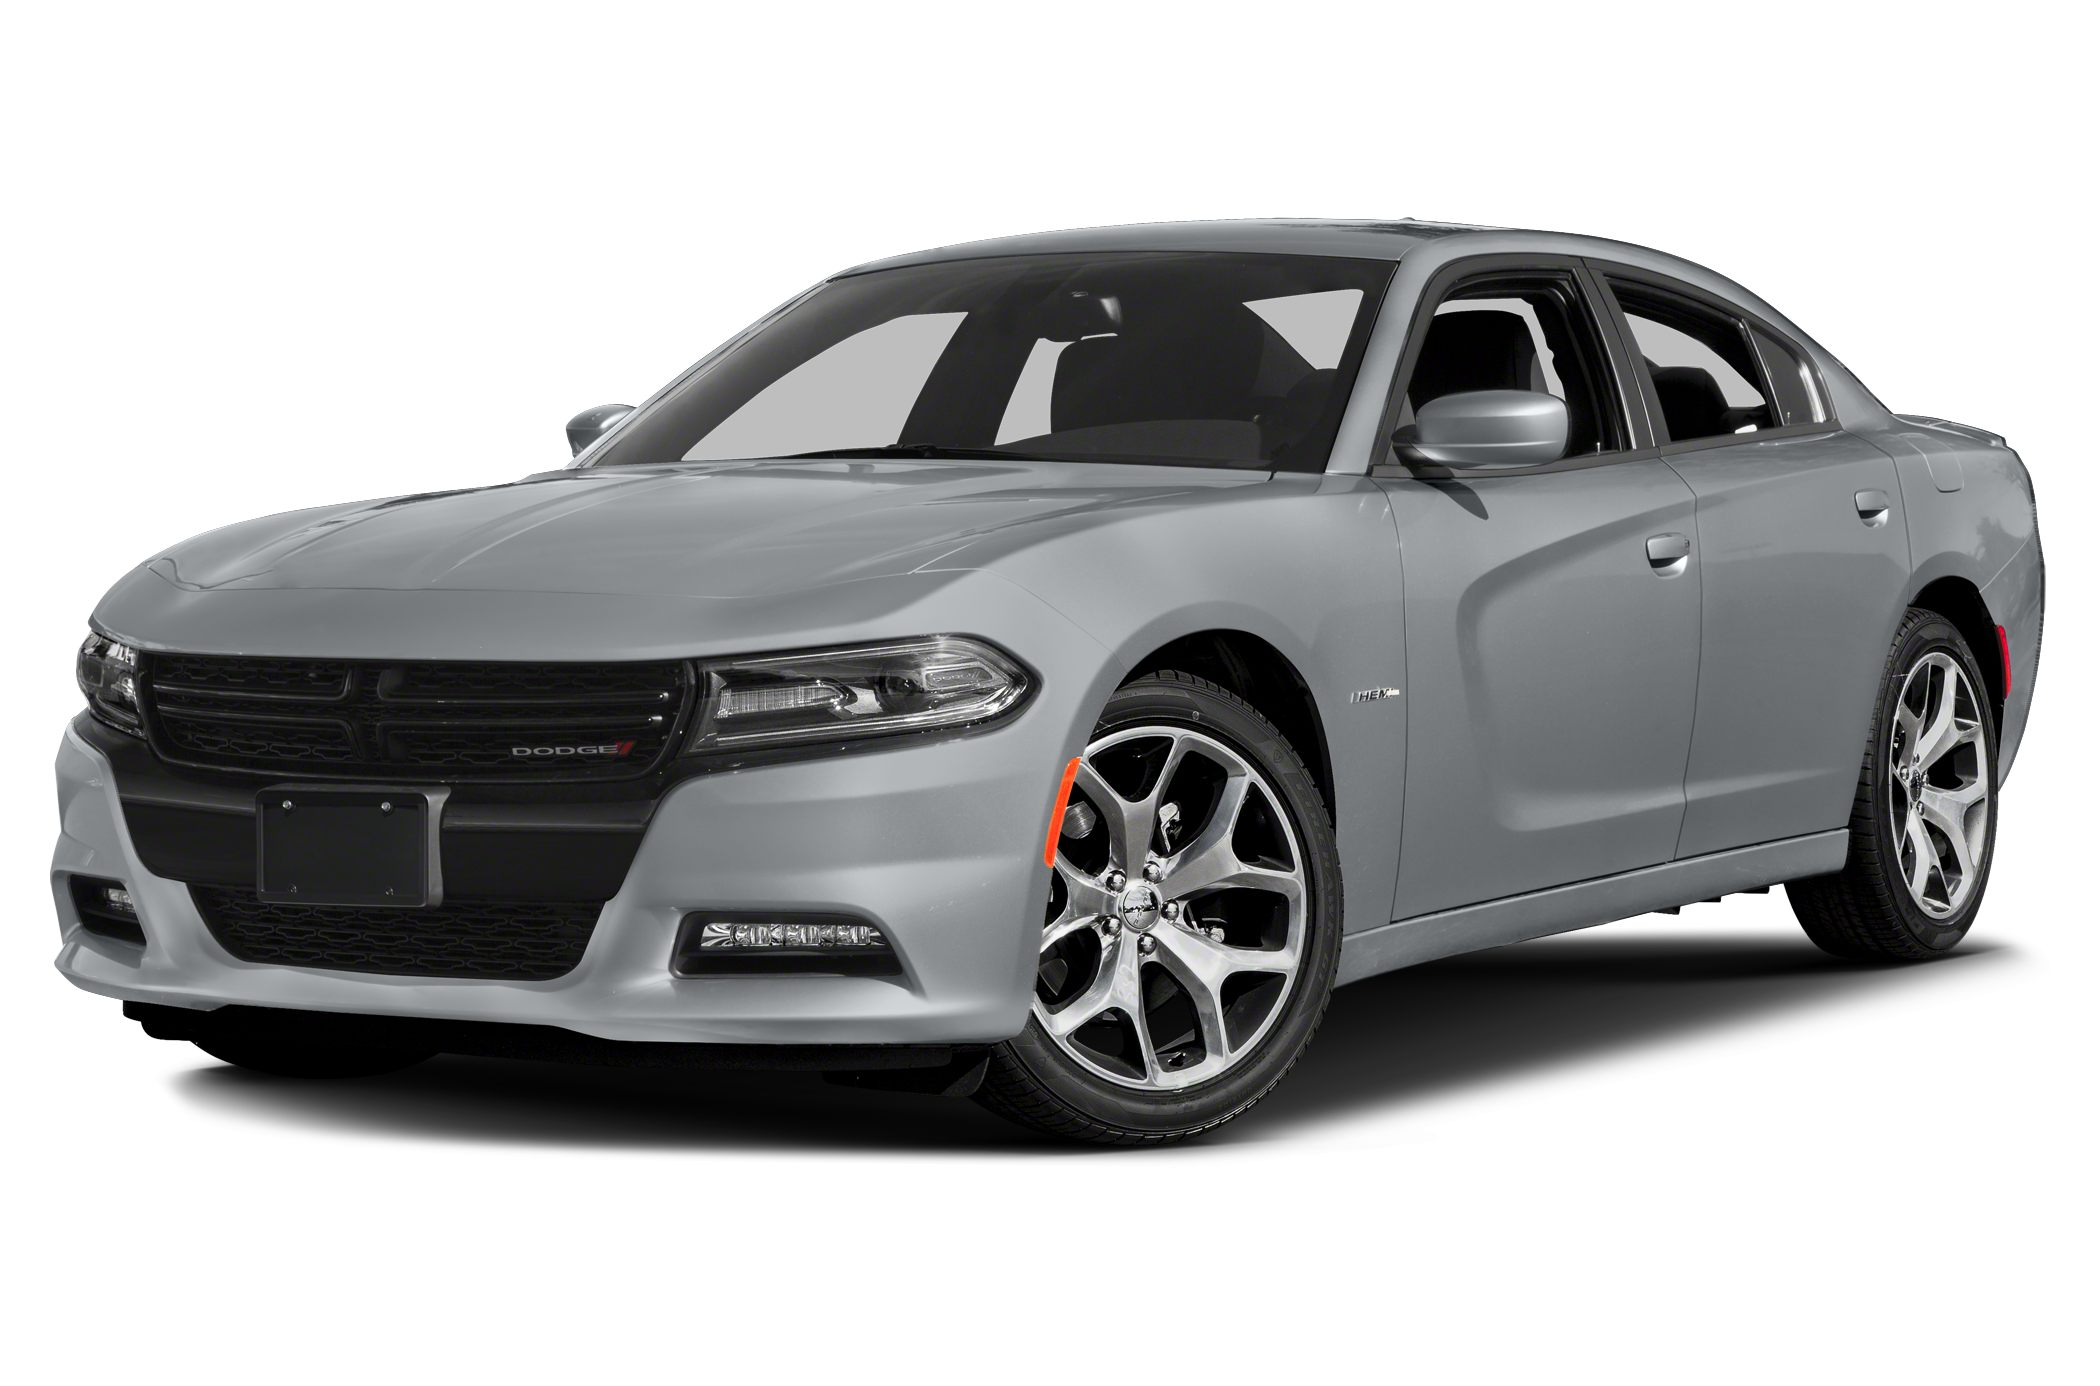 2016 Dodge Charger RT Price includes 1000 - 2016MY USAA Member Certificate 39CGW1 500 - 2016